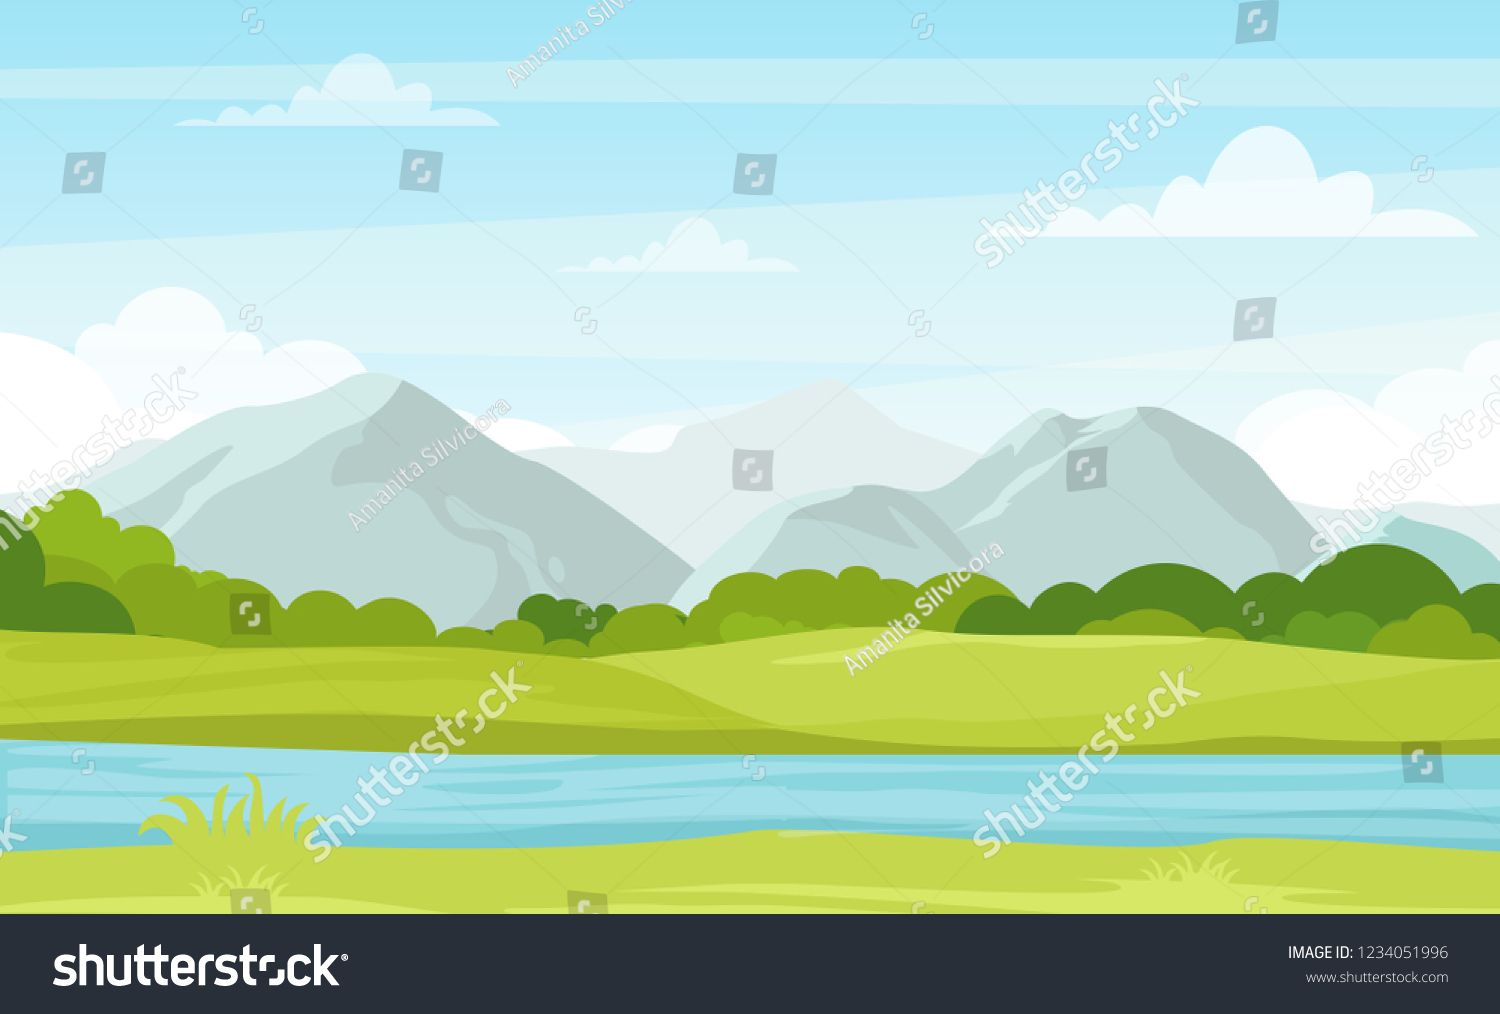 Vector Illustration Of Summer Landscape With Mountains And River Beautiful Mountains View In Cartoon Flat Summer Landscape Beautiful Landscapes Banner Design